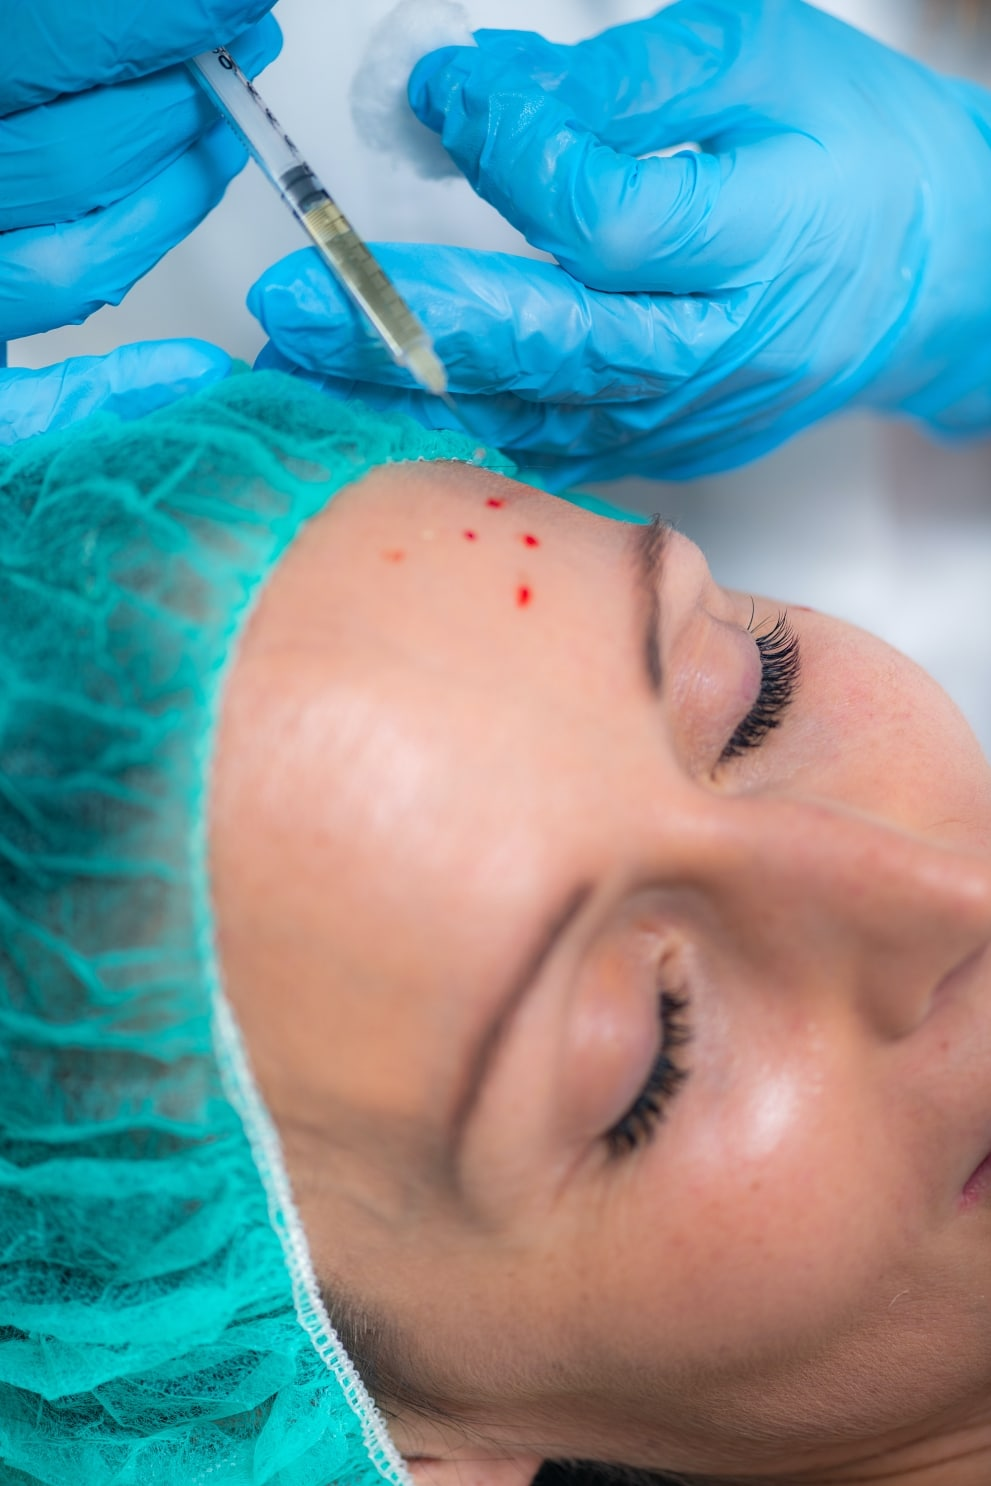 Preparations for Injectable/ Needling Treatment